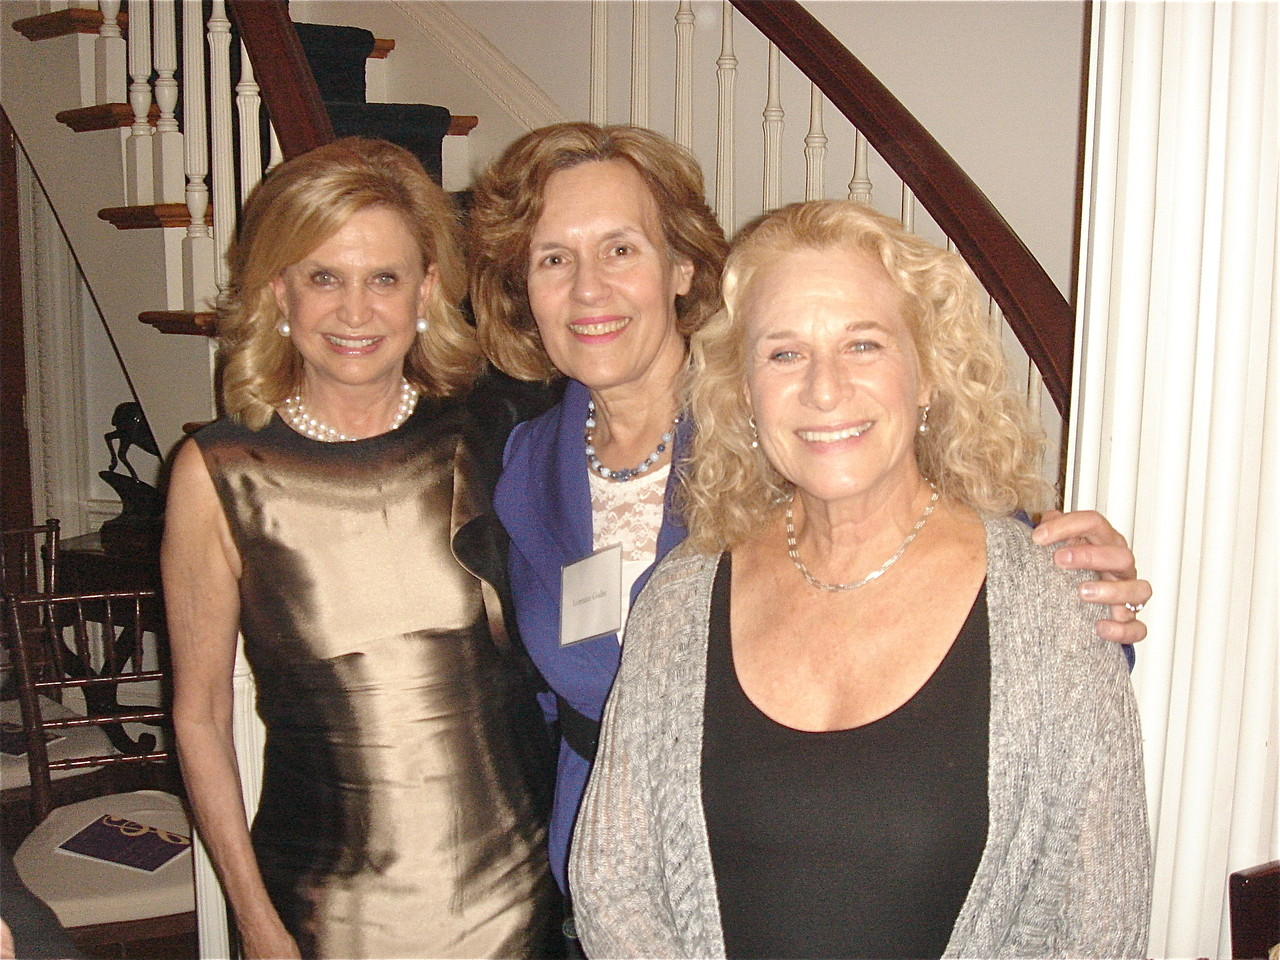 US Rep. Carolyn Maloney, Lorraine Gudas, & Carole King at a fall event.